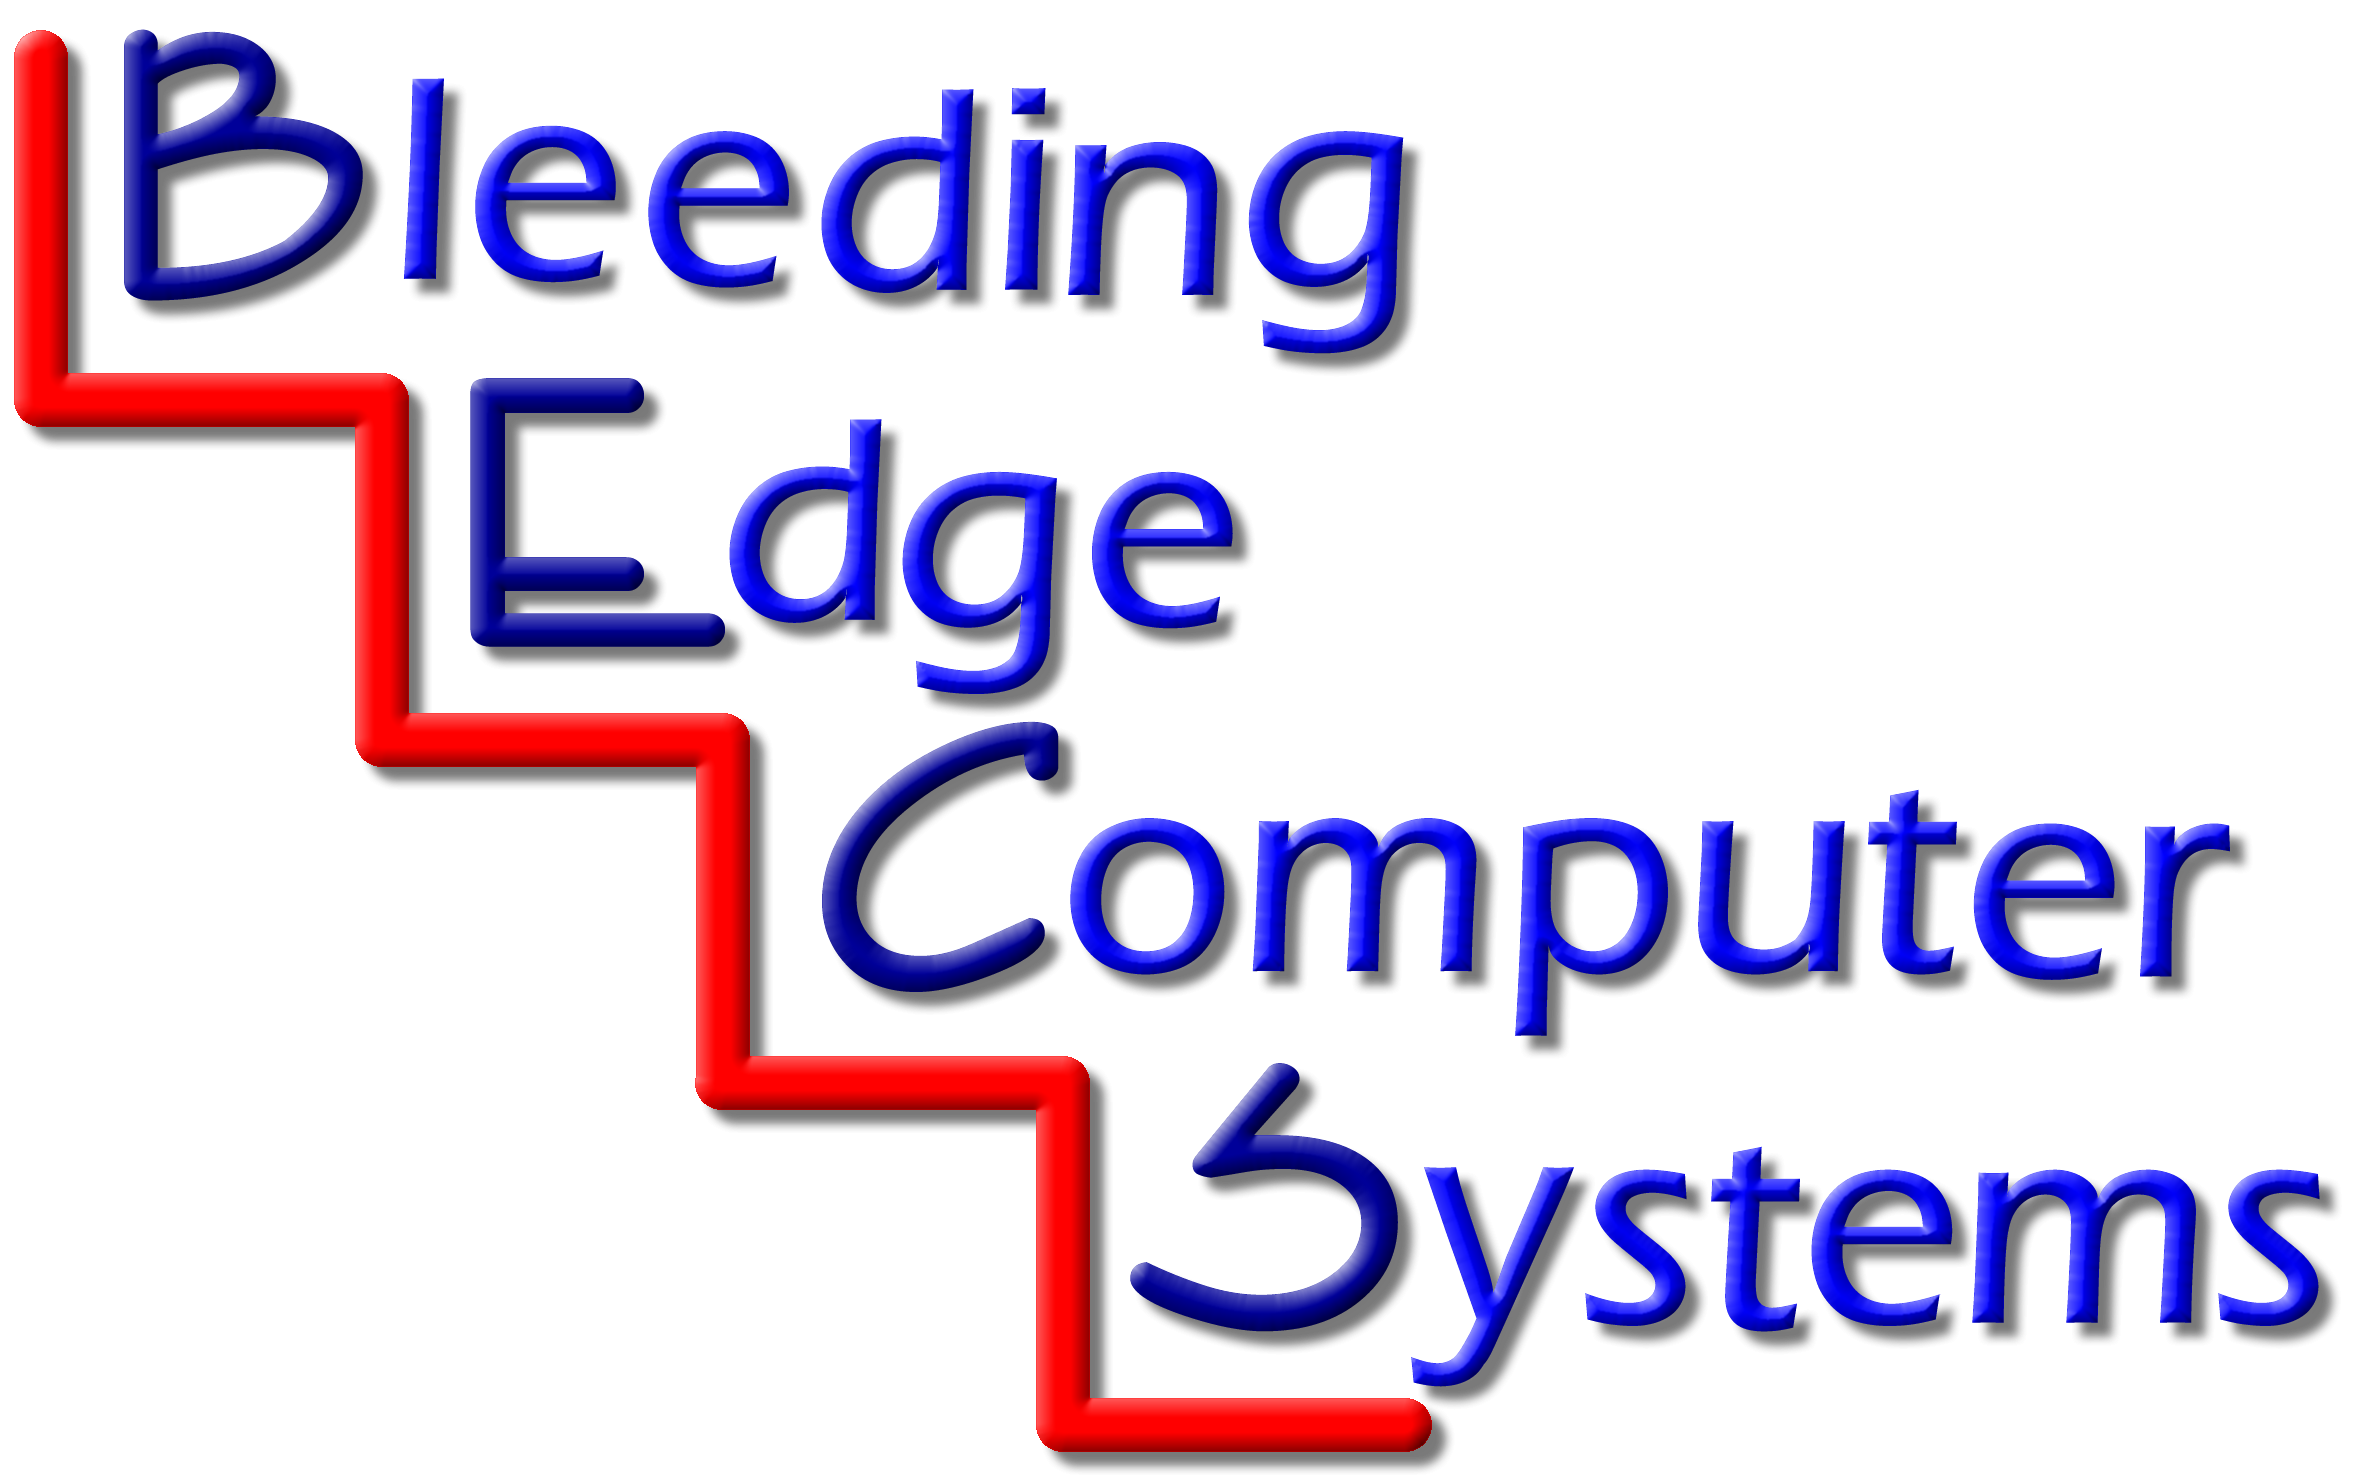 Bleeding Edge Computer Systems